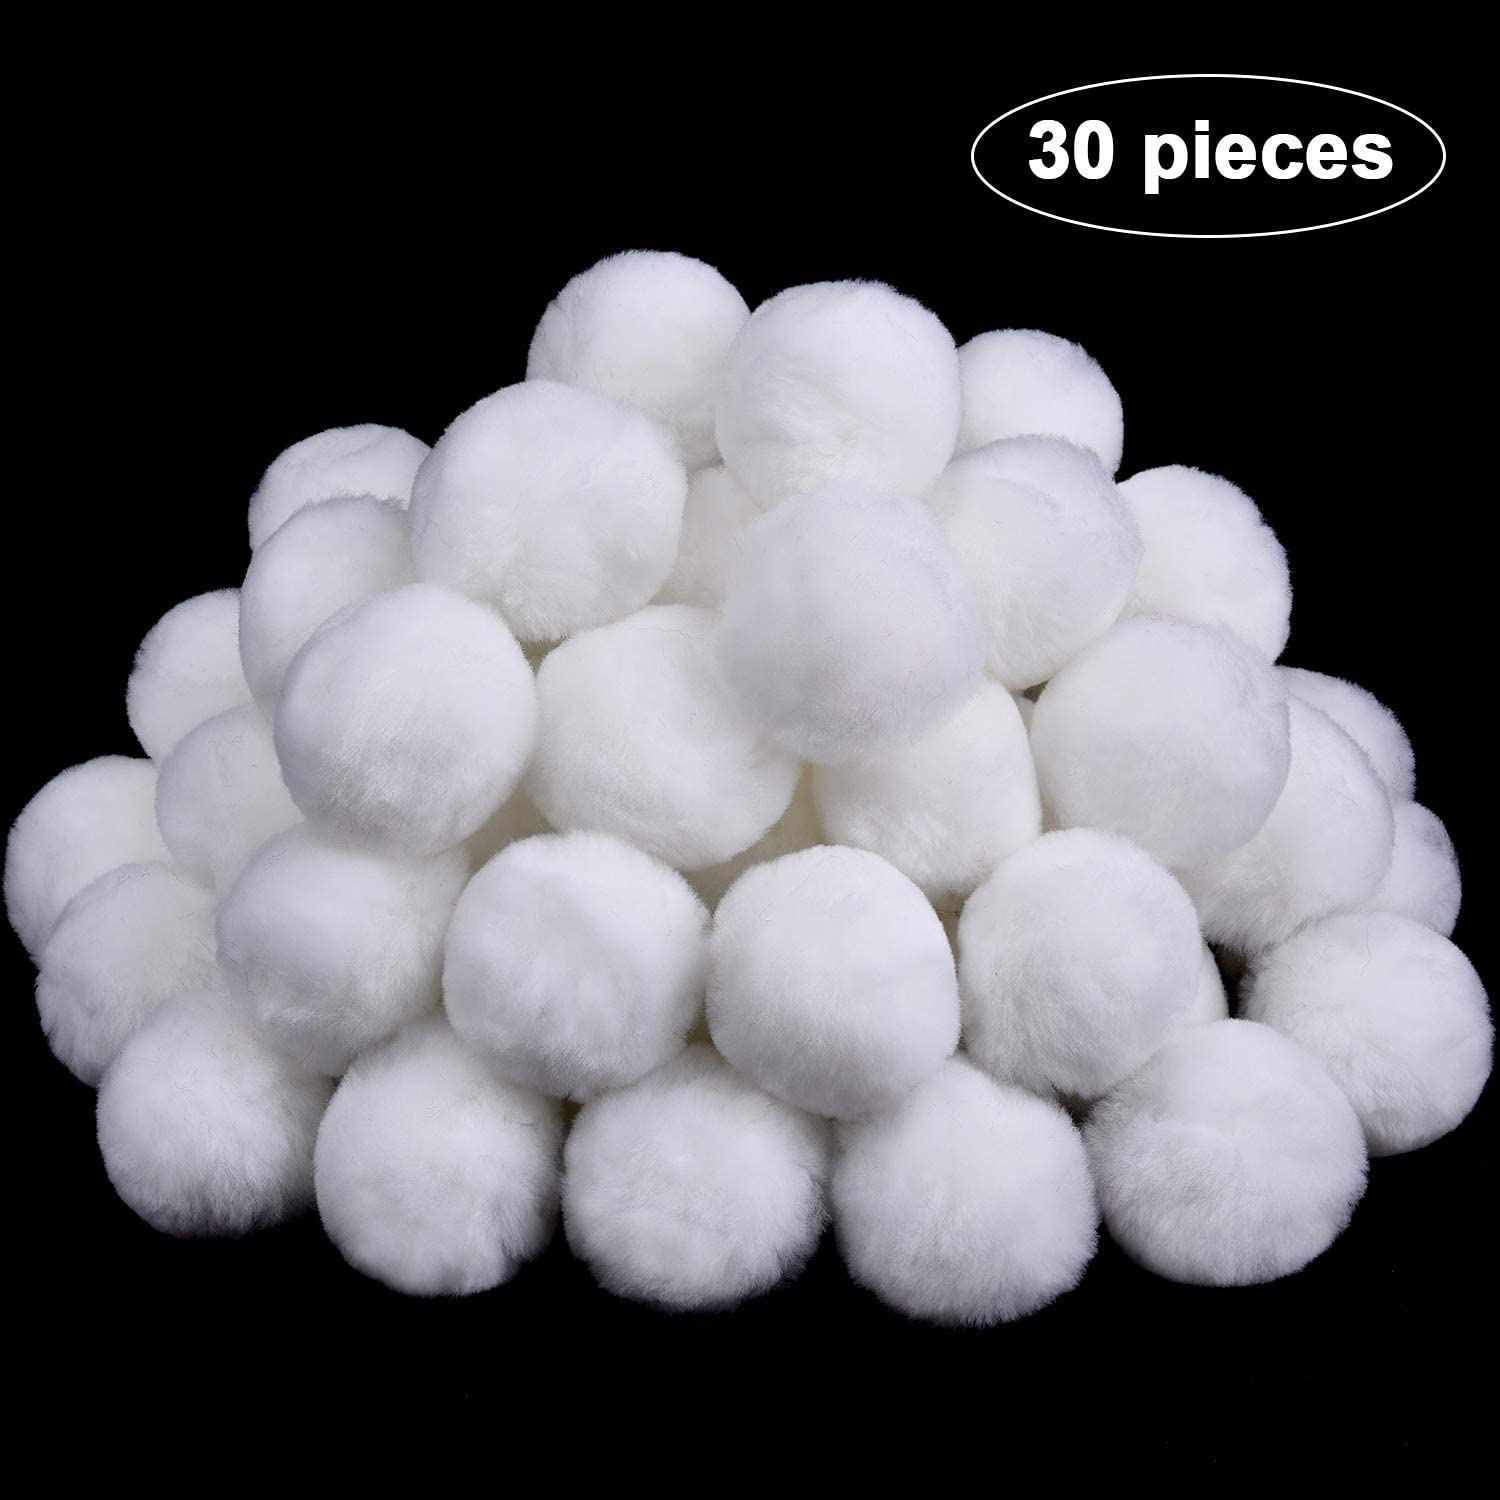 30 Pieces 2 Inch Acrylic Pom Poms Large White Halloween Pom Poms Tinkerbell Costume Accessory for DIY Craft Halloween Costume